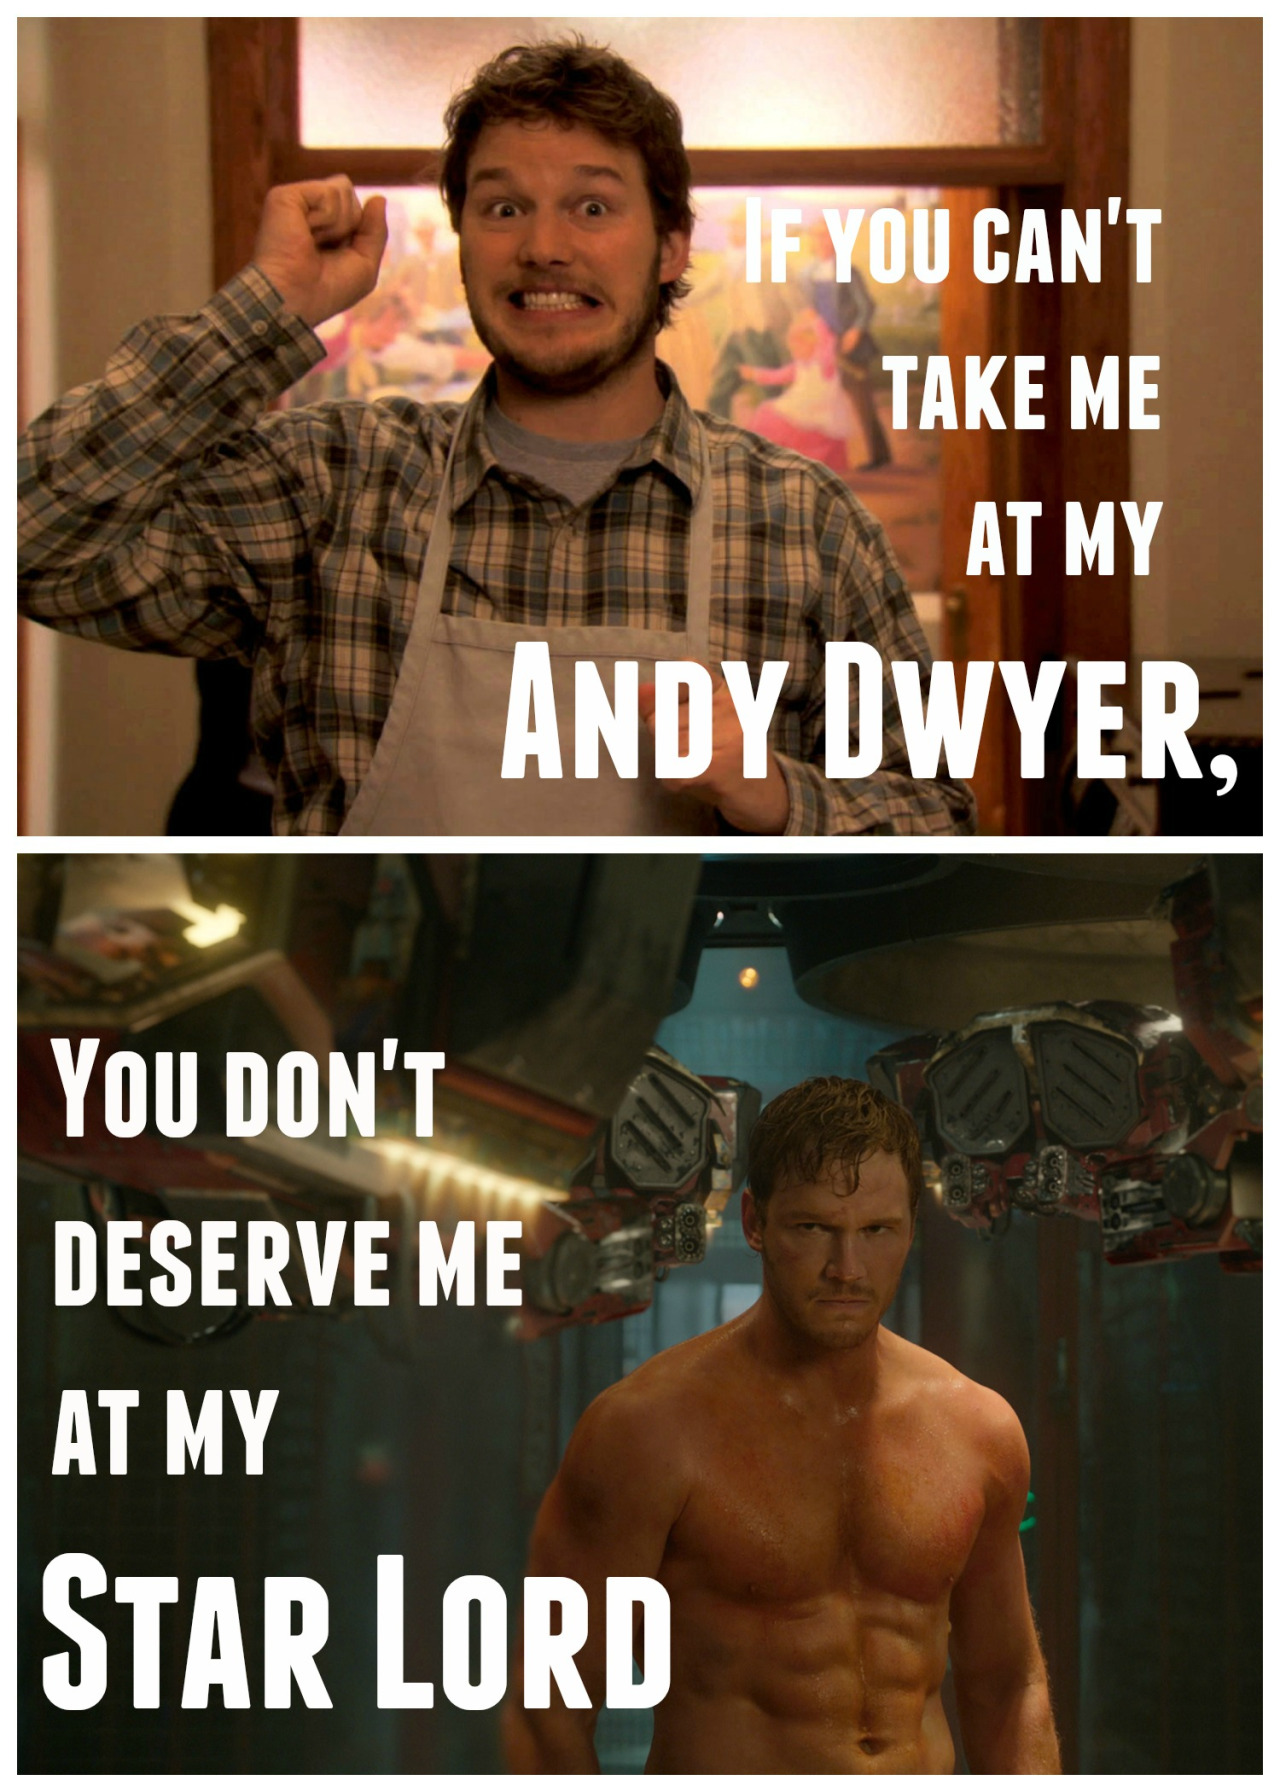 Fyou cant take me at my andy dwyer you dont deserve me at my